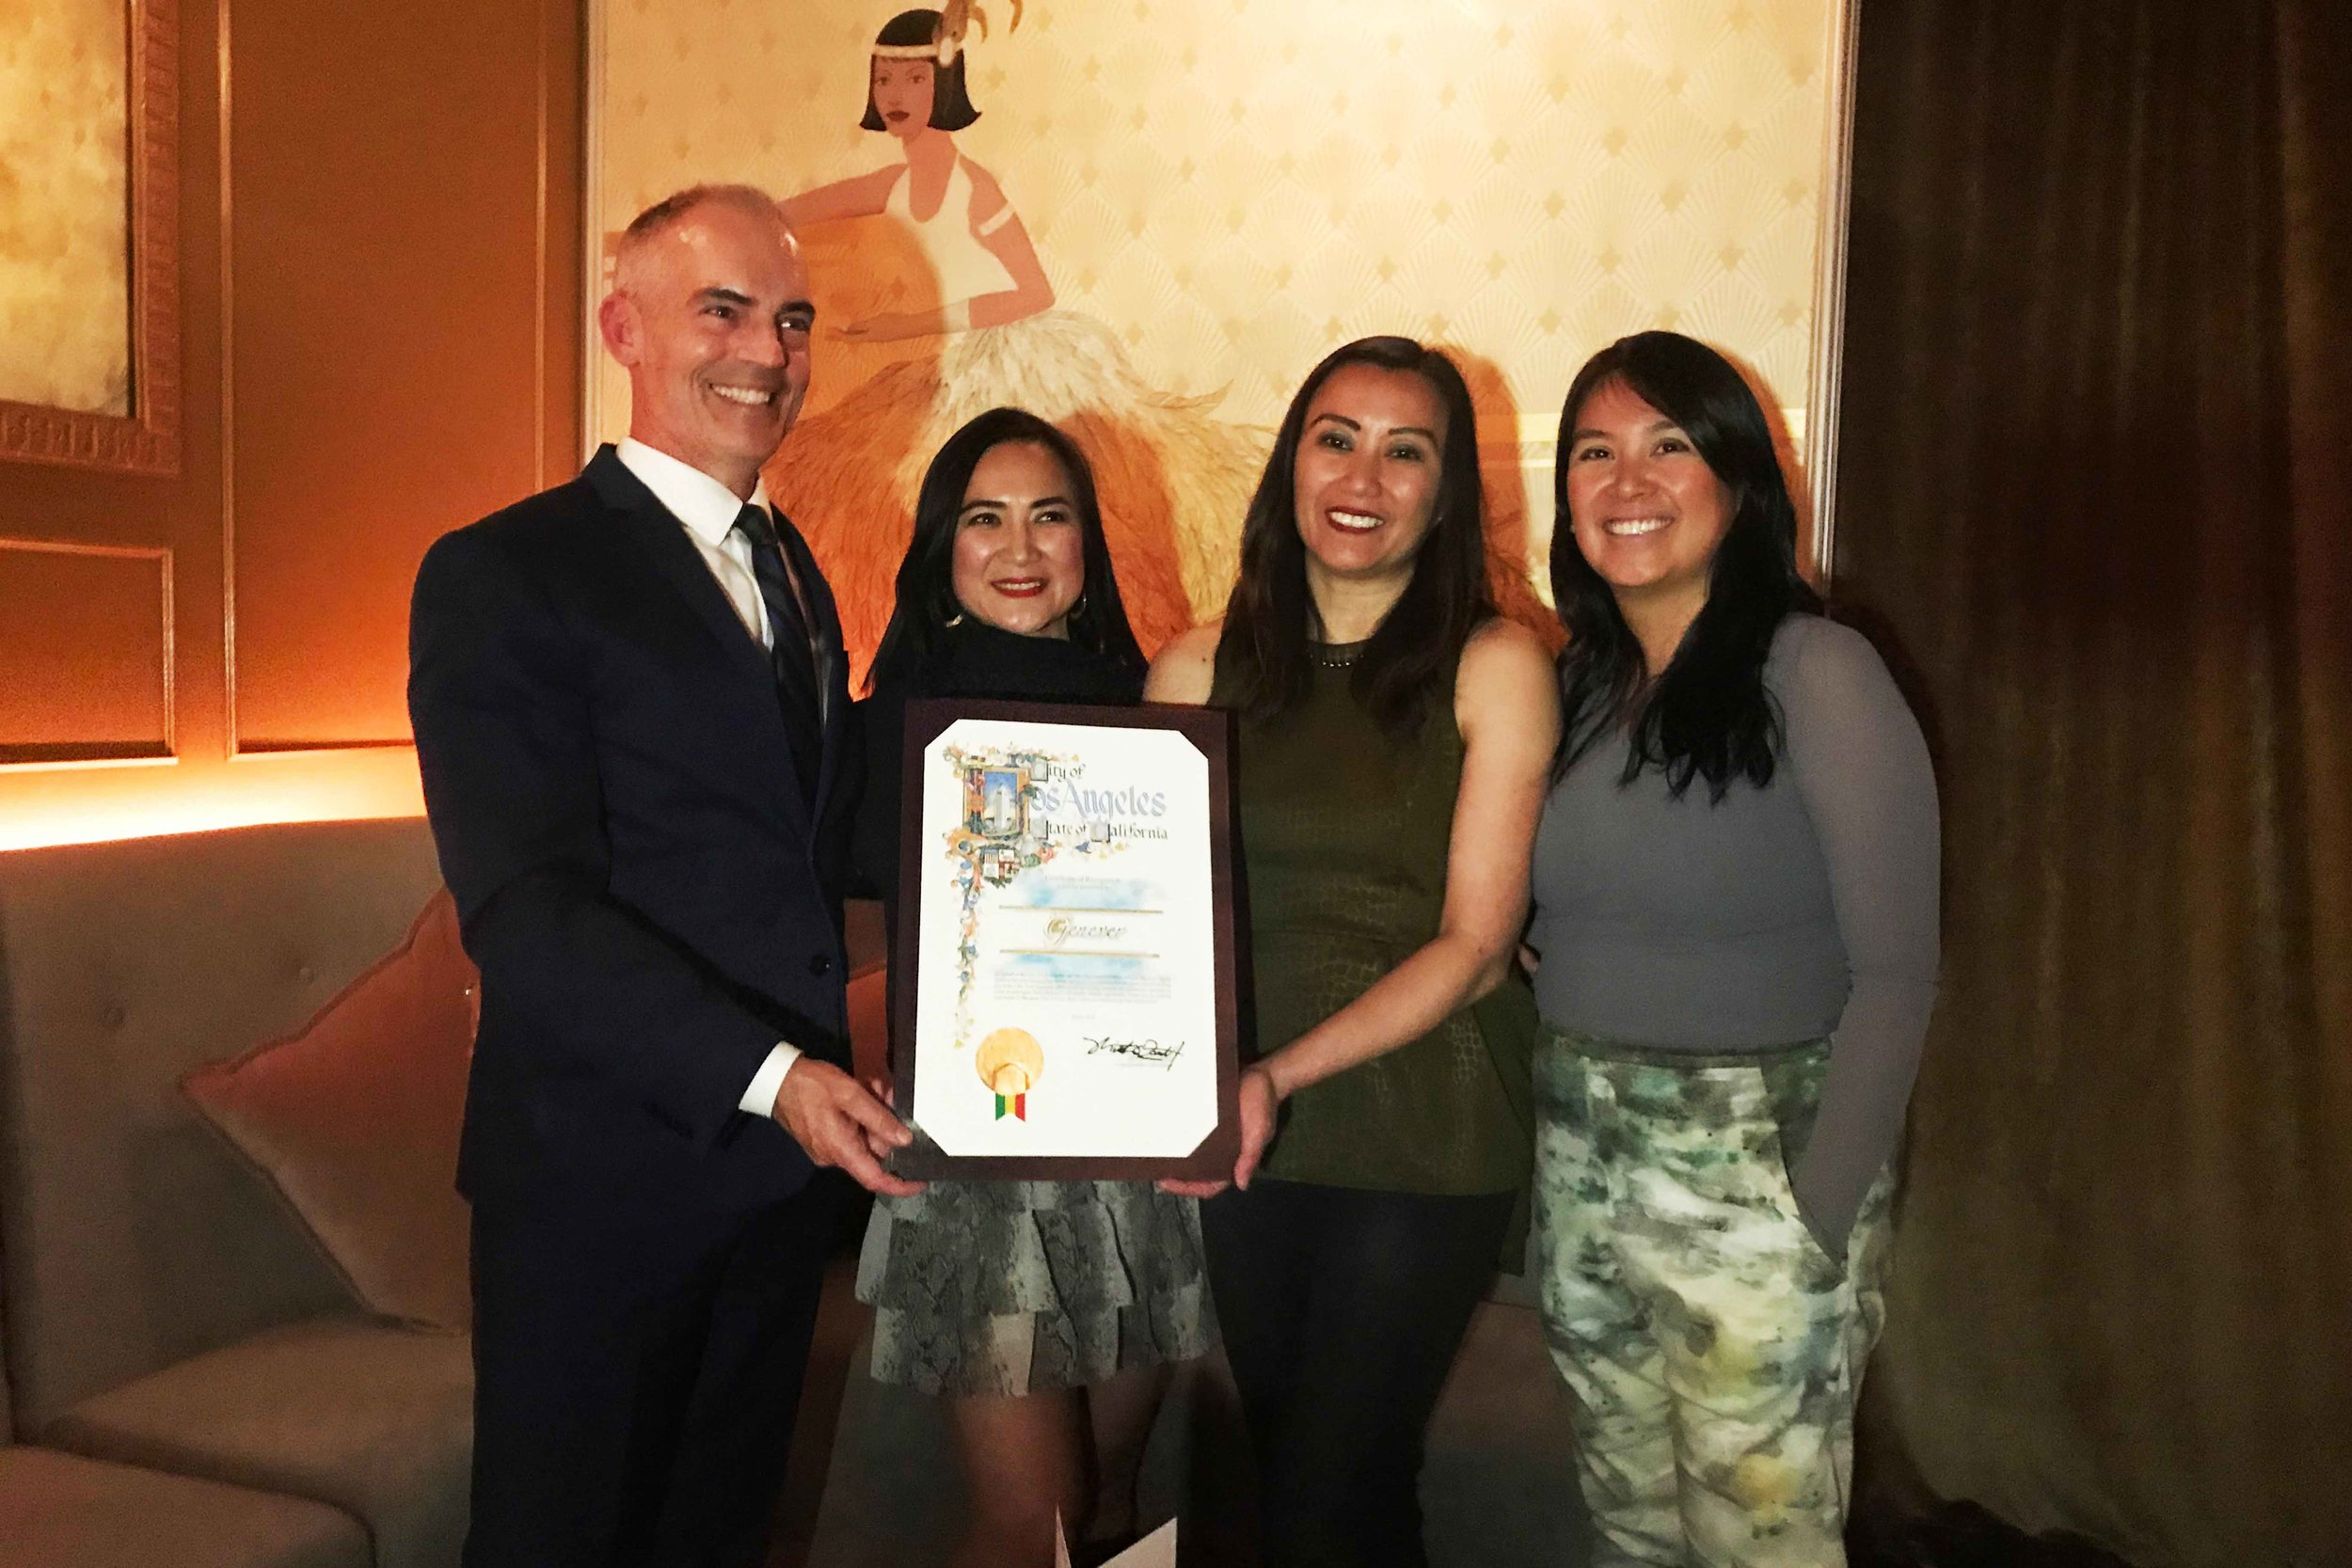 """Councilmember Mitch O'Farrell presents the City Certificate of Recognition to Genever owners Christine """"Tinette"""" Sumiller, Patricia """"Tricia"""" Perez, and Roselma Samala. Photo by Paola Mardo."""